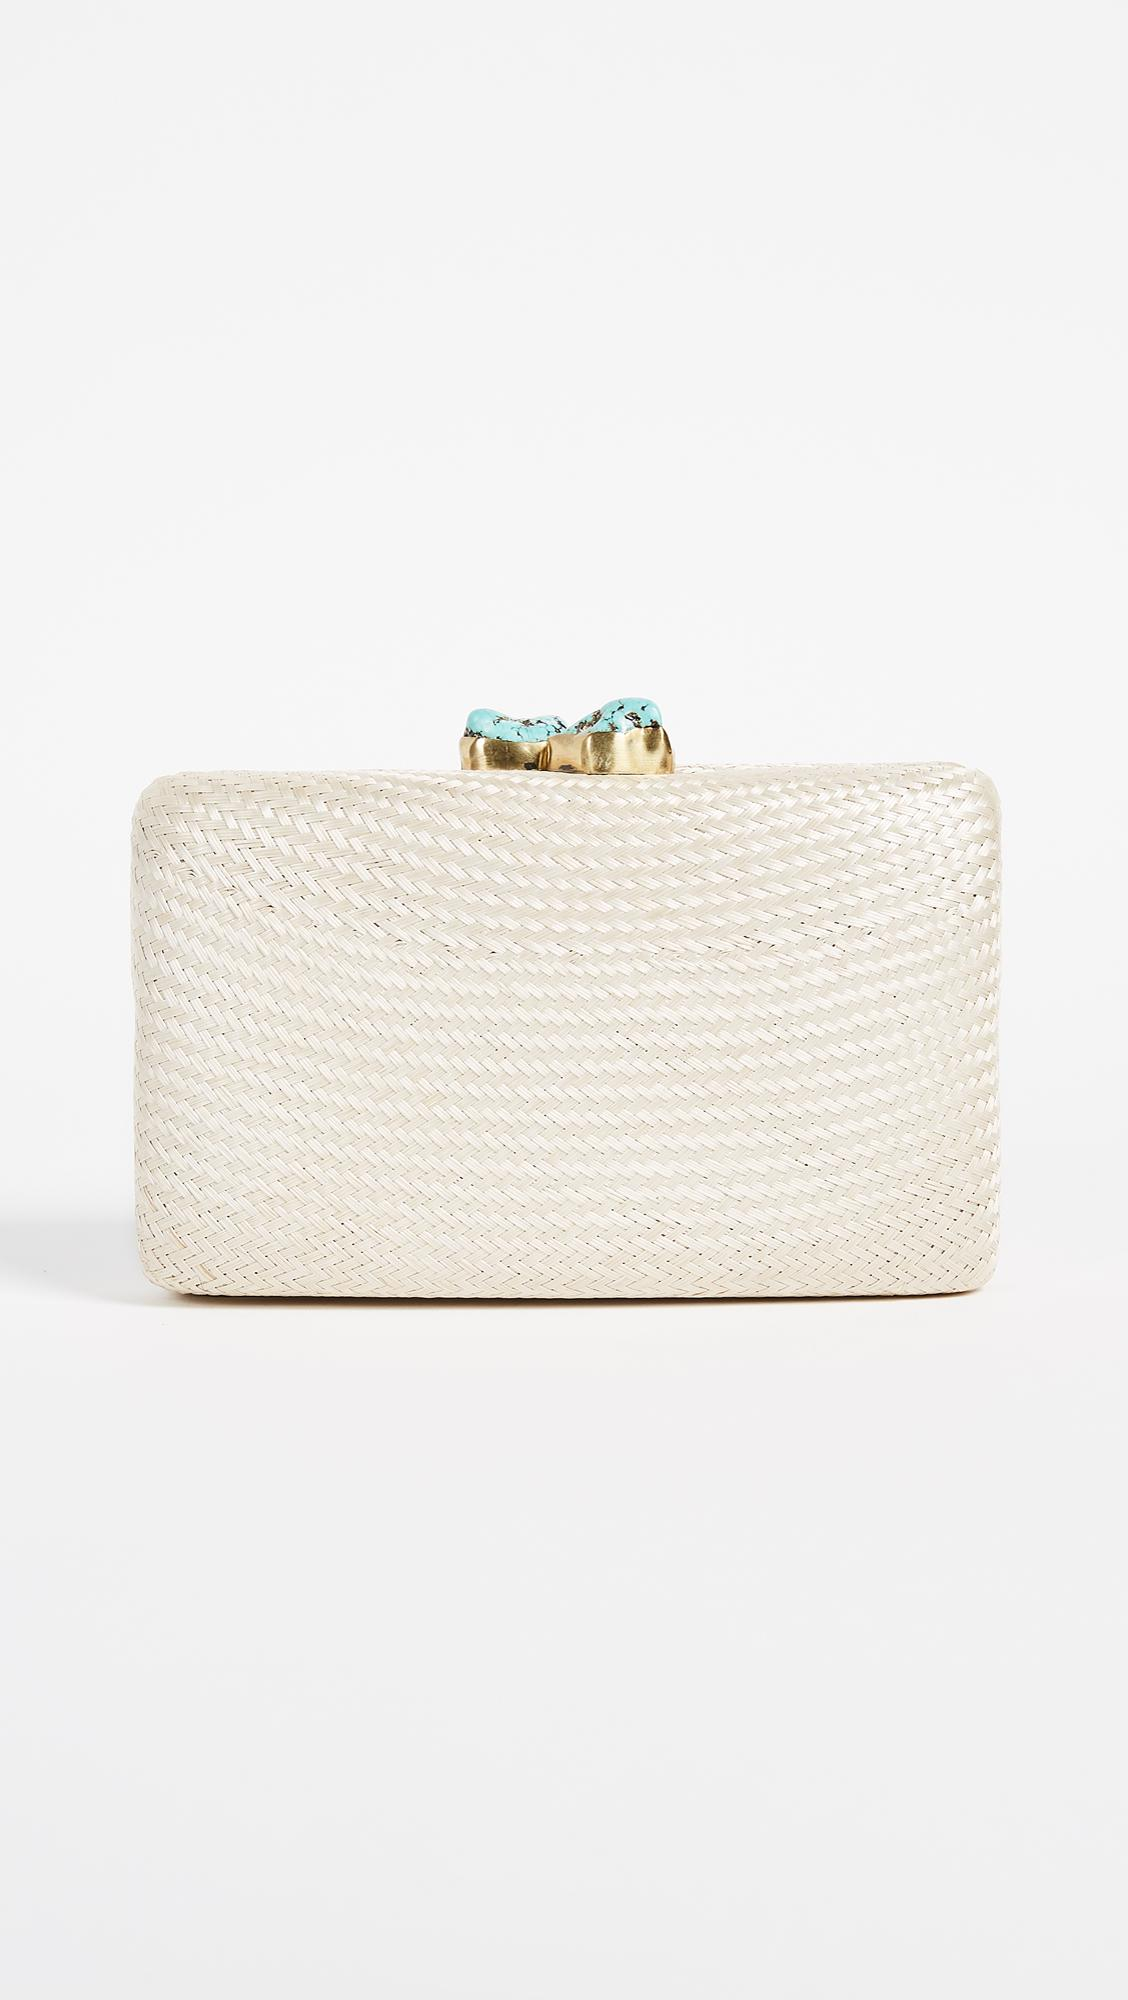 Kayu Jen Clutch with Turquoise Stone